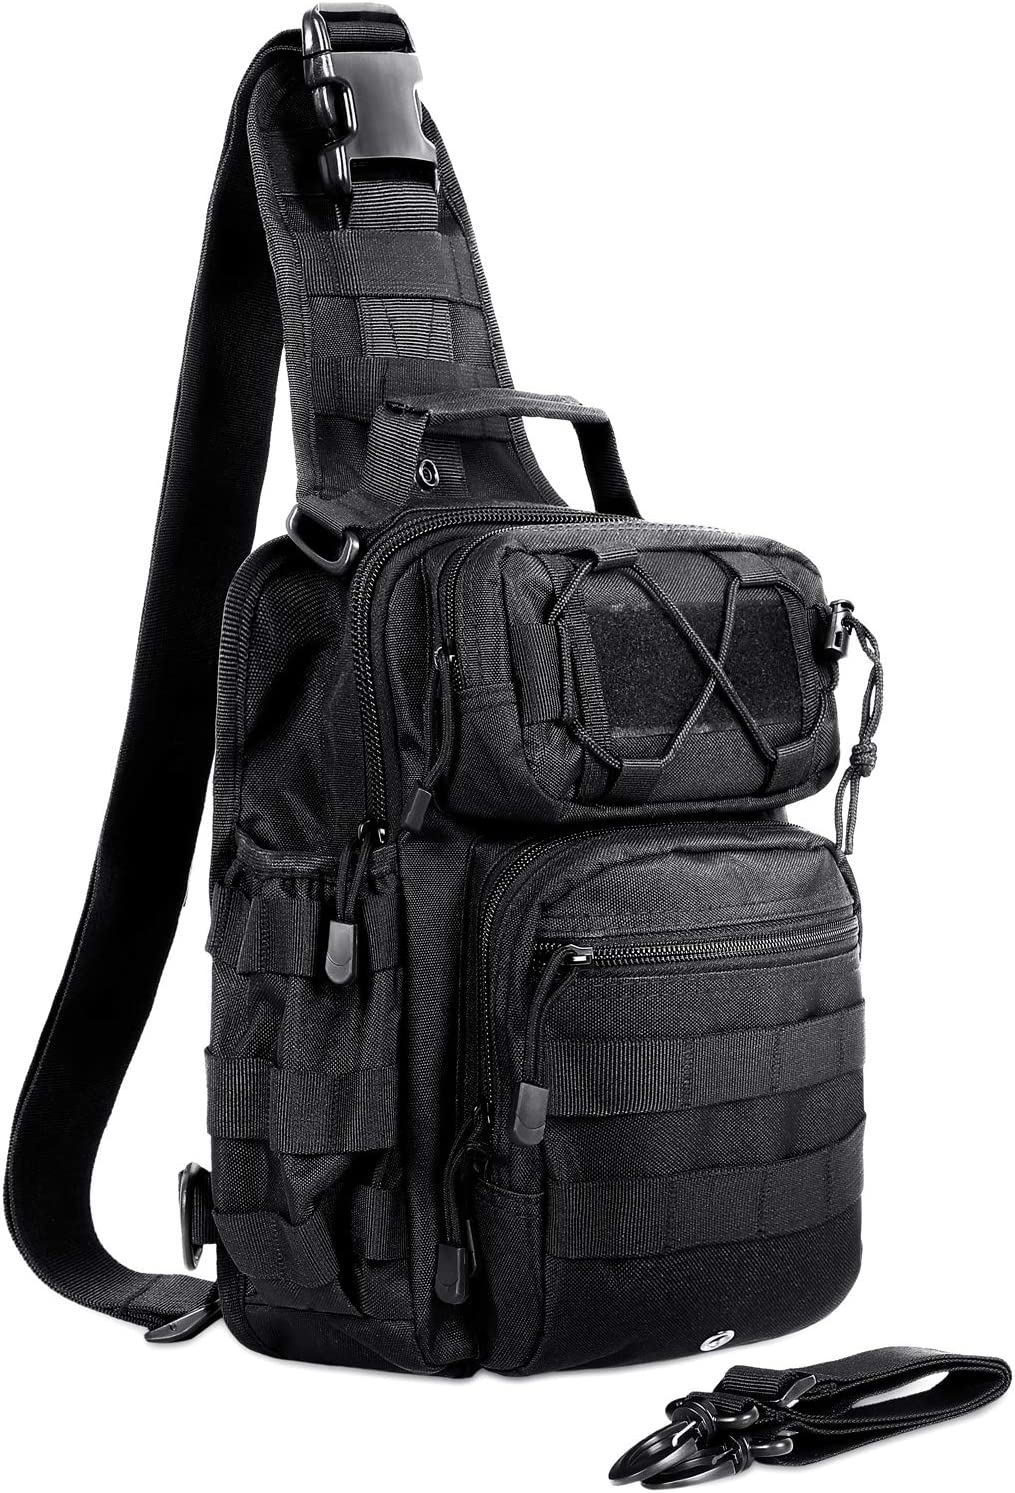 AmHoo Tactical Sling Bag Outdoor EDC Molle Backpack